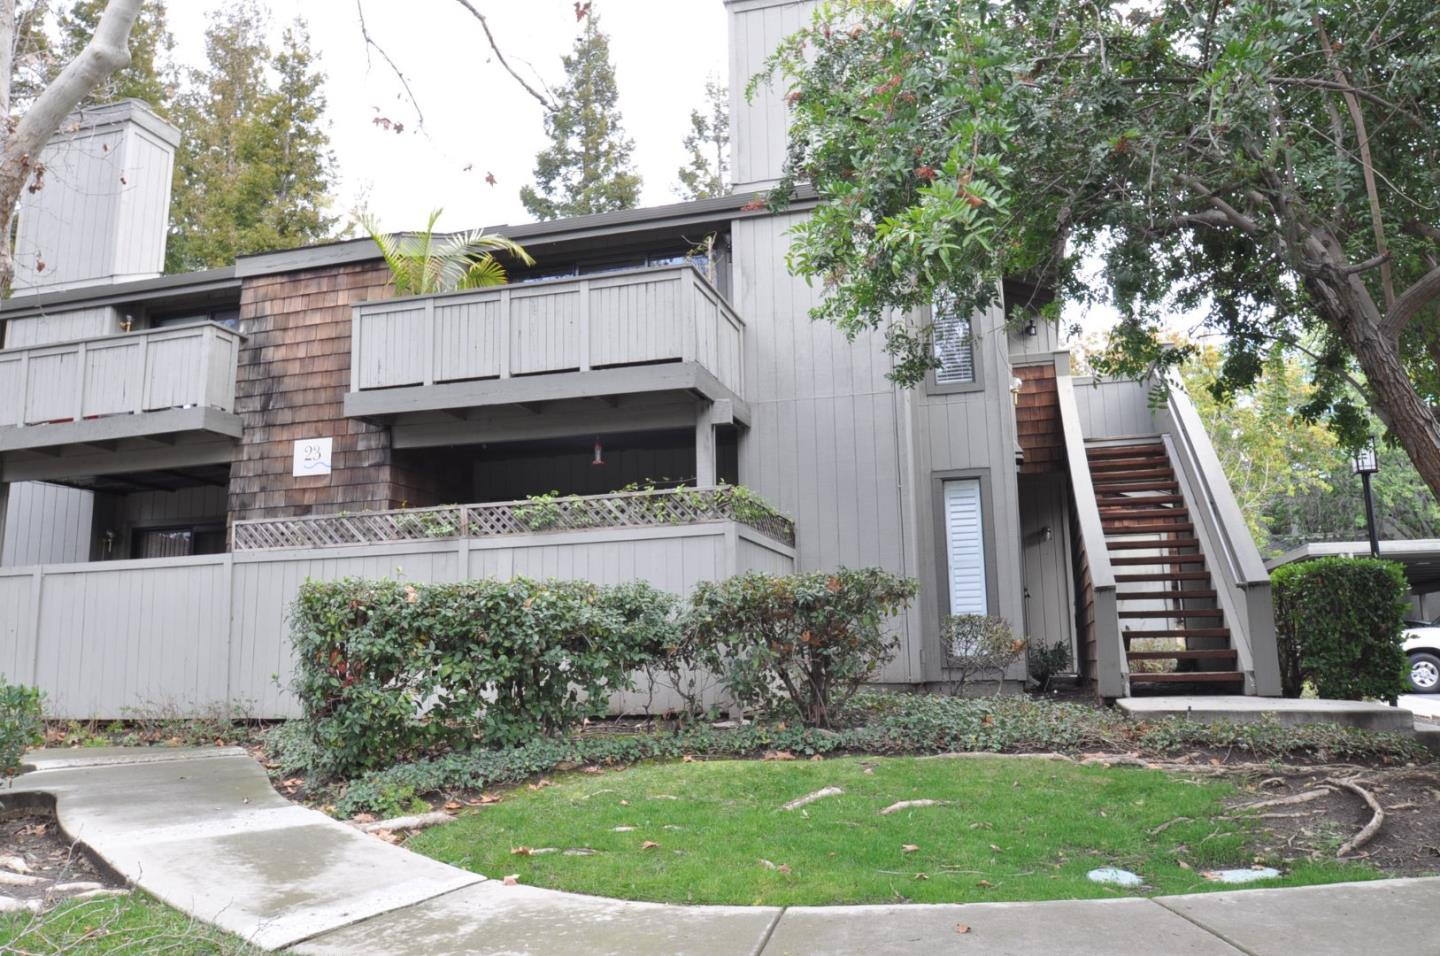 3511 La Terrace Cir, San Jose, CA 95123